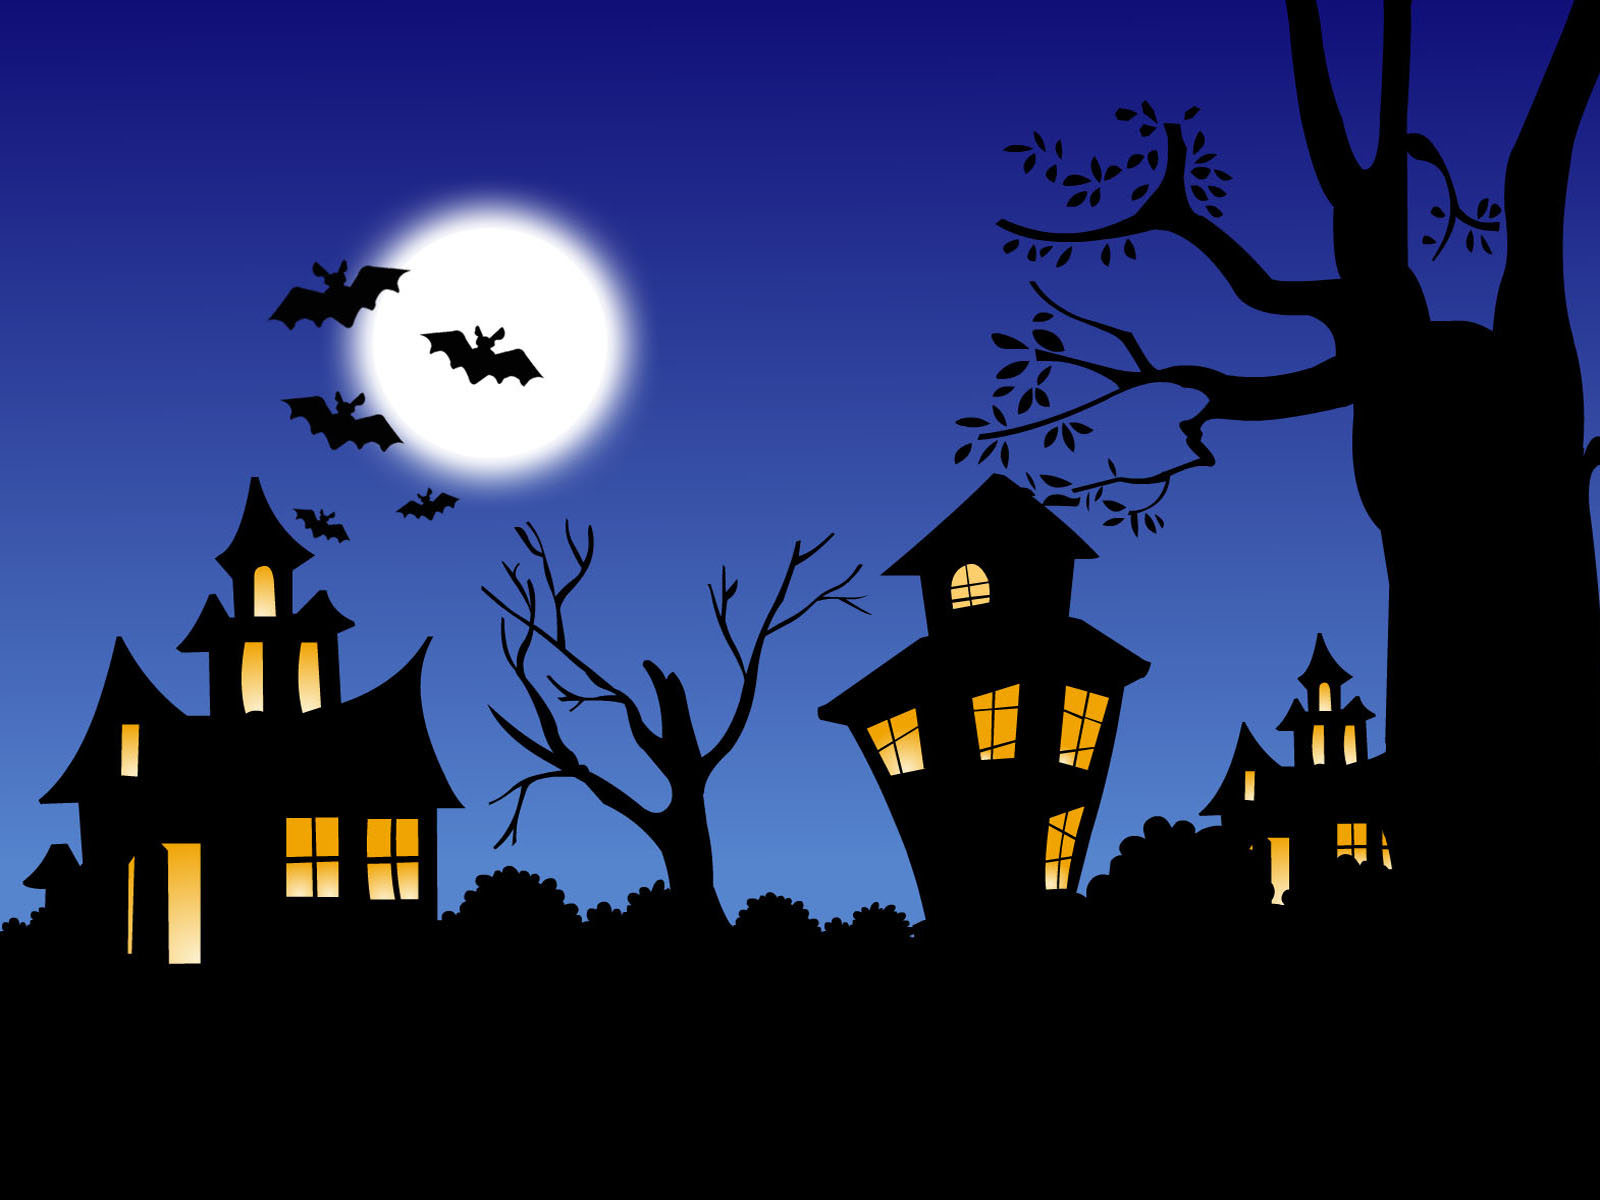 Free Halloween Wallpaper 5206 1600x1200 px ~ HDWallSource.com